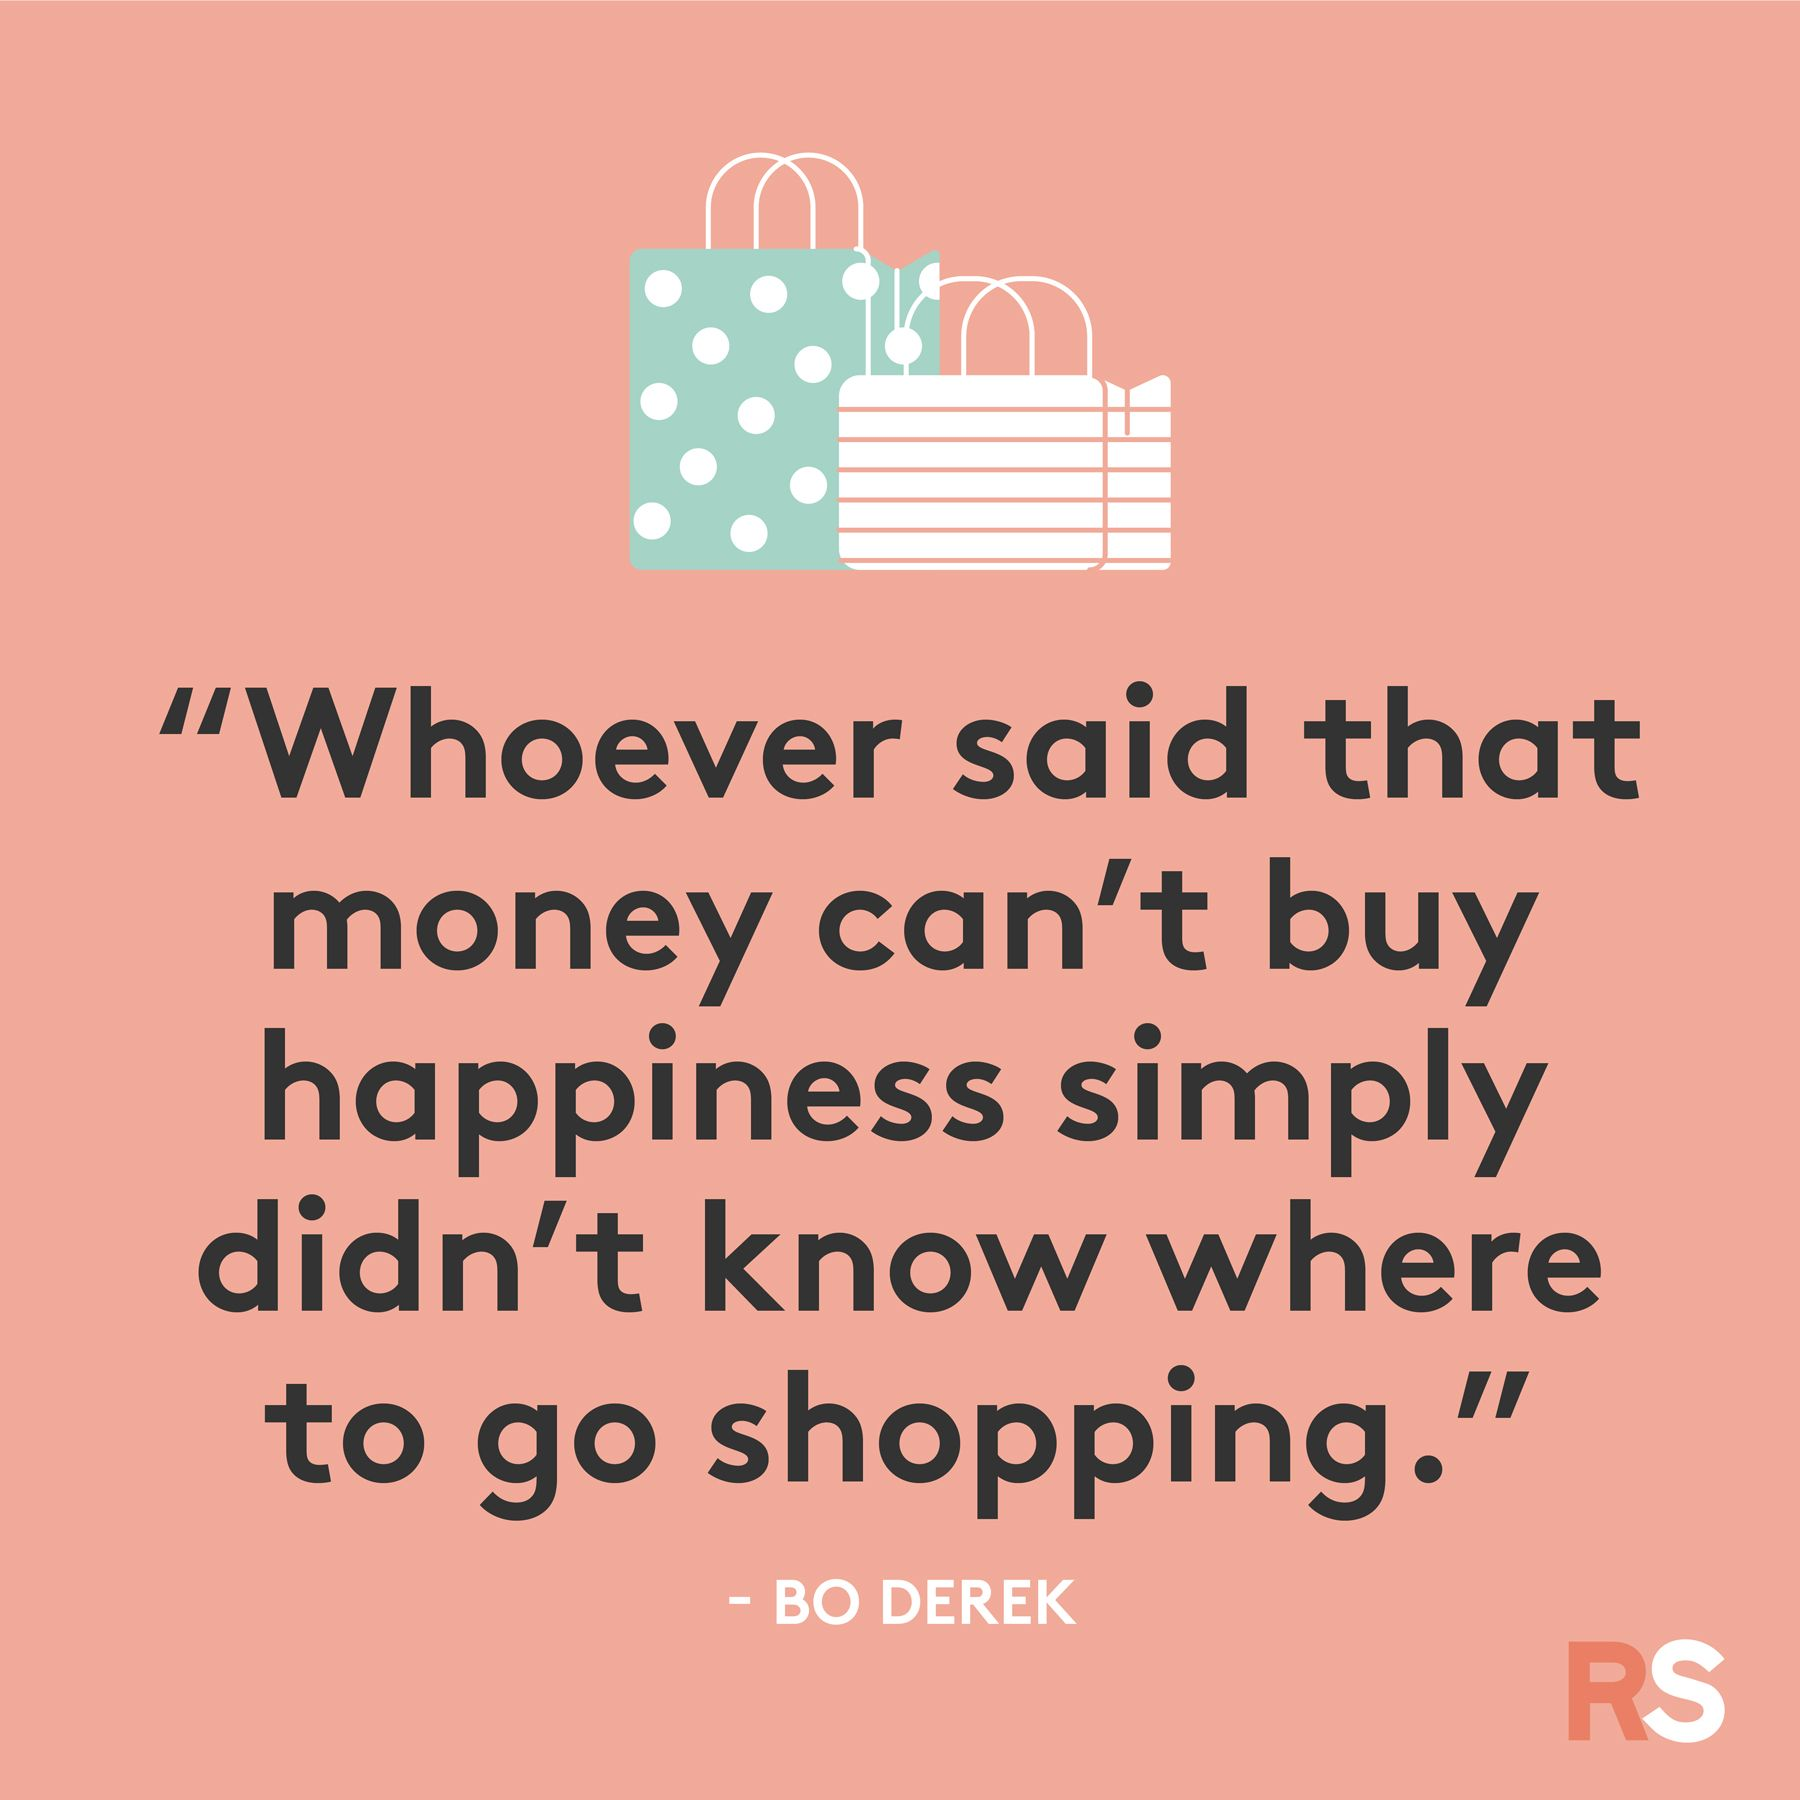 Black Friday Quotes And Sayings Shopping Quotes Shopping Quotes Funny Shopping Quotes Online Shopping Quotes